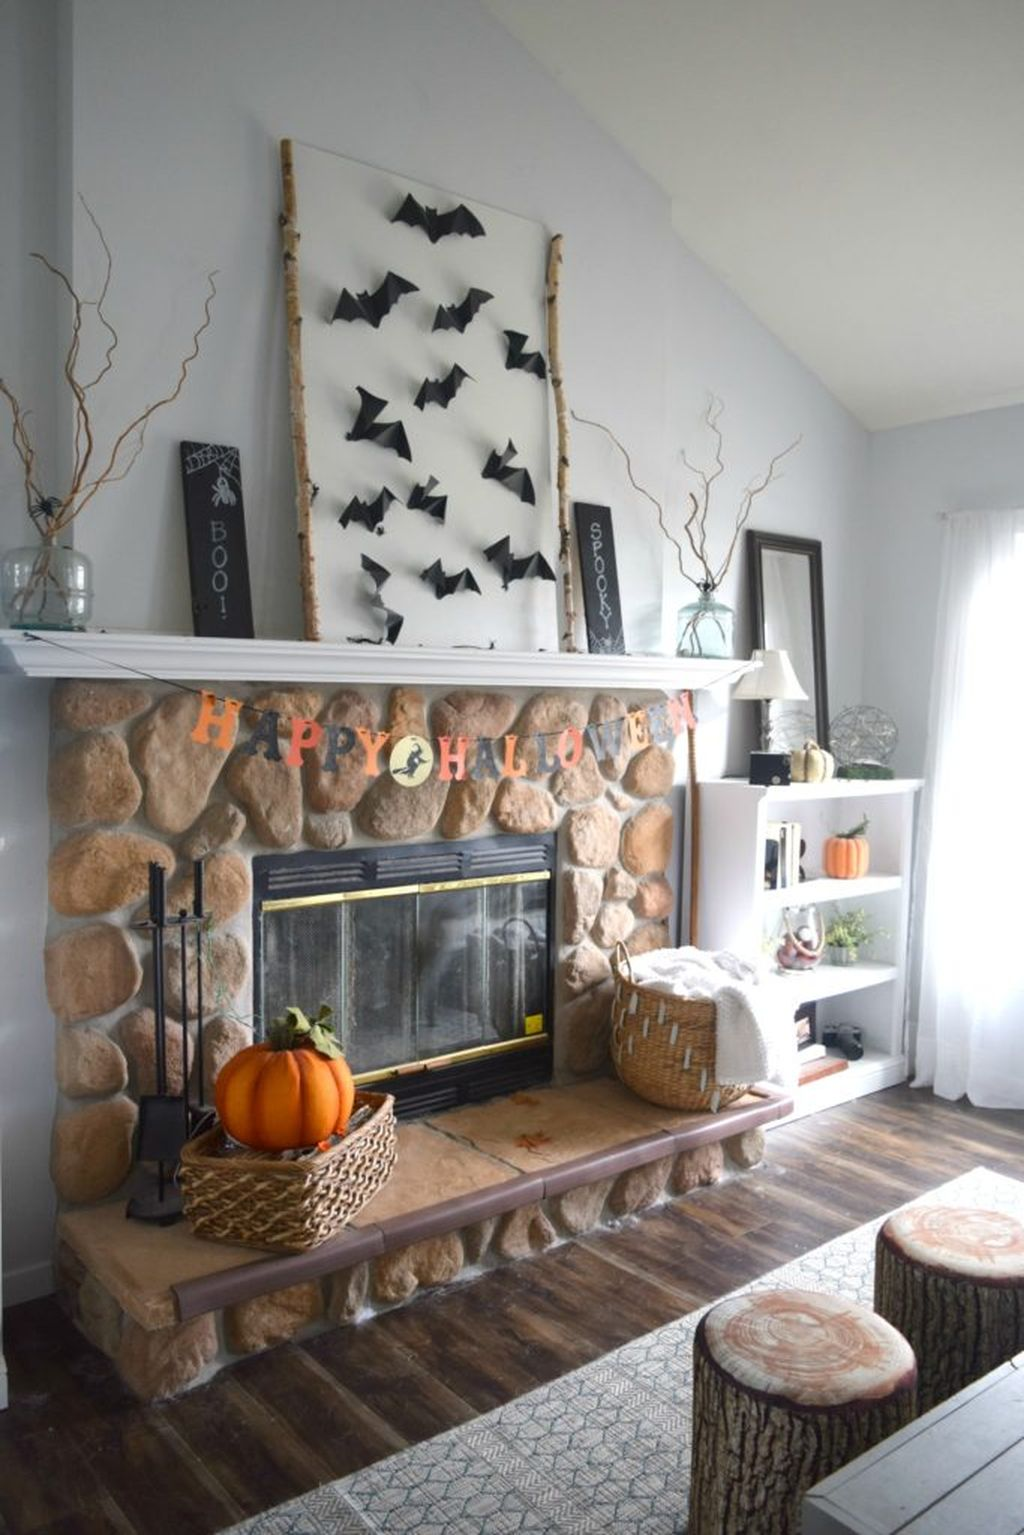 Scary But Classy Halloween Fireplace Decoration Ideas 16